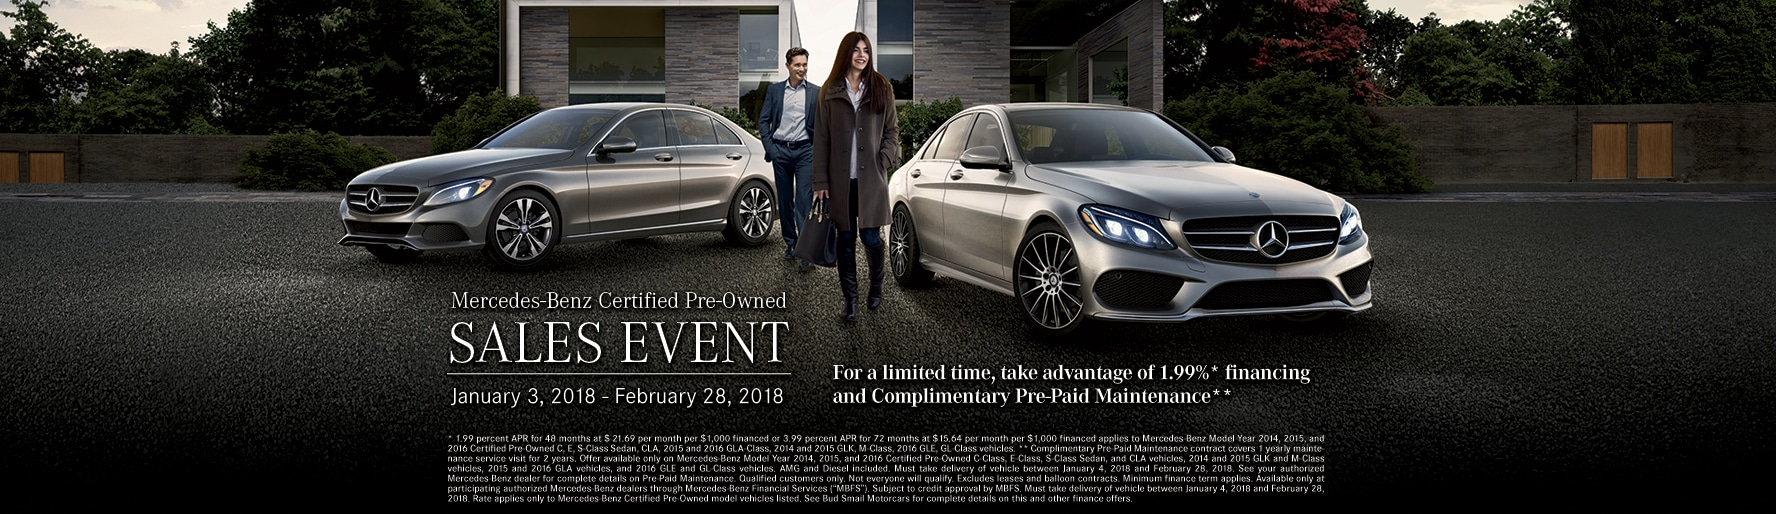 Mercedes-Benz Dealer in Greensburg PA. New, Used and ...